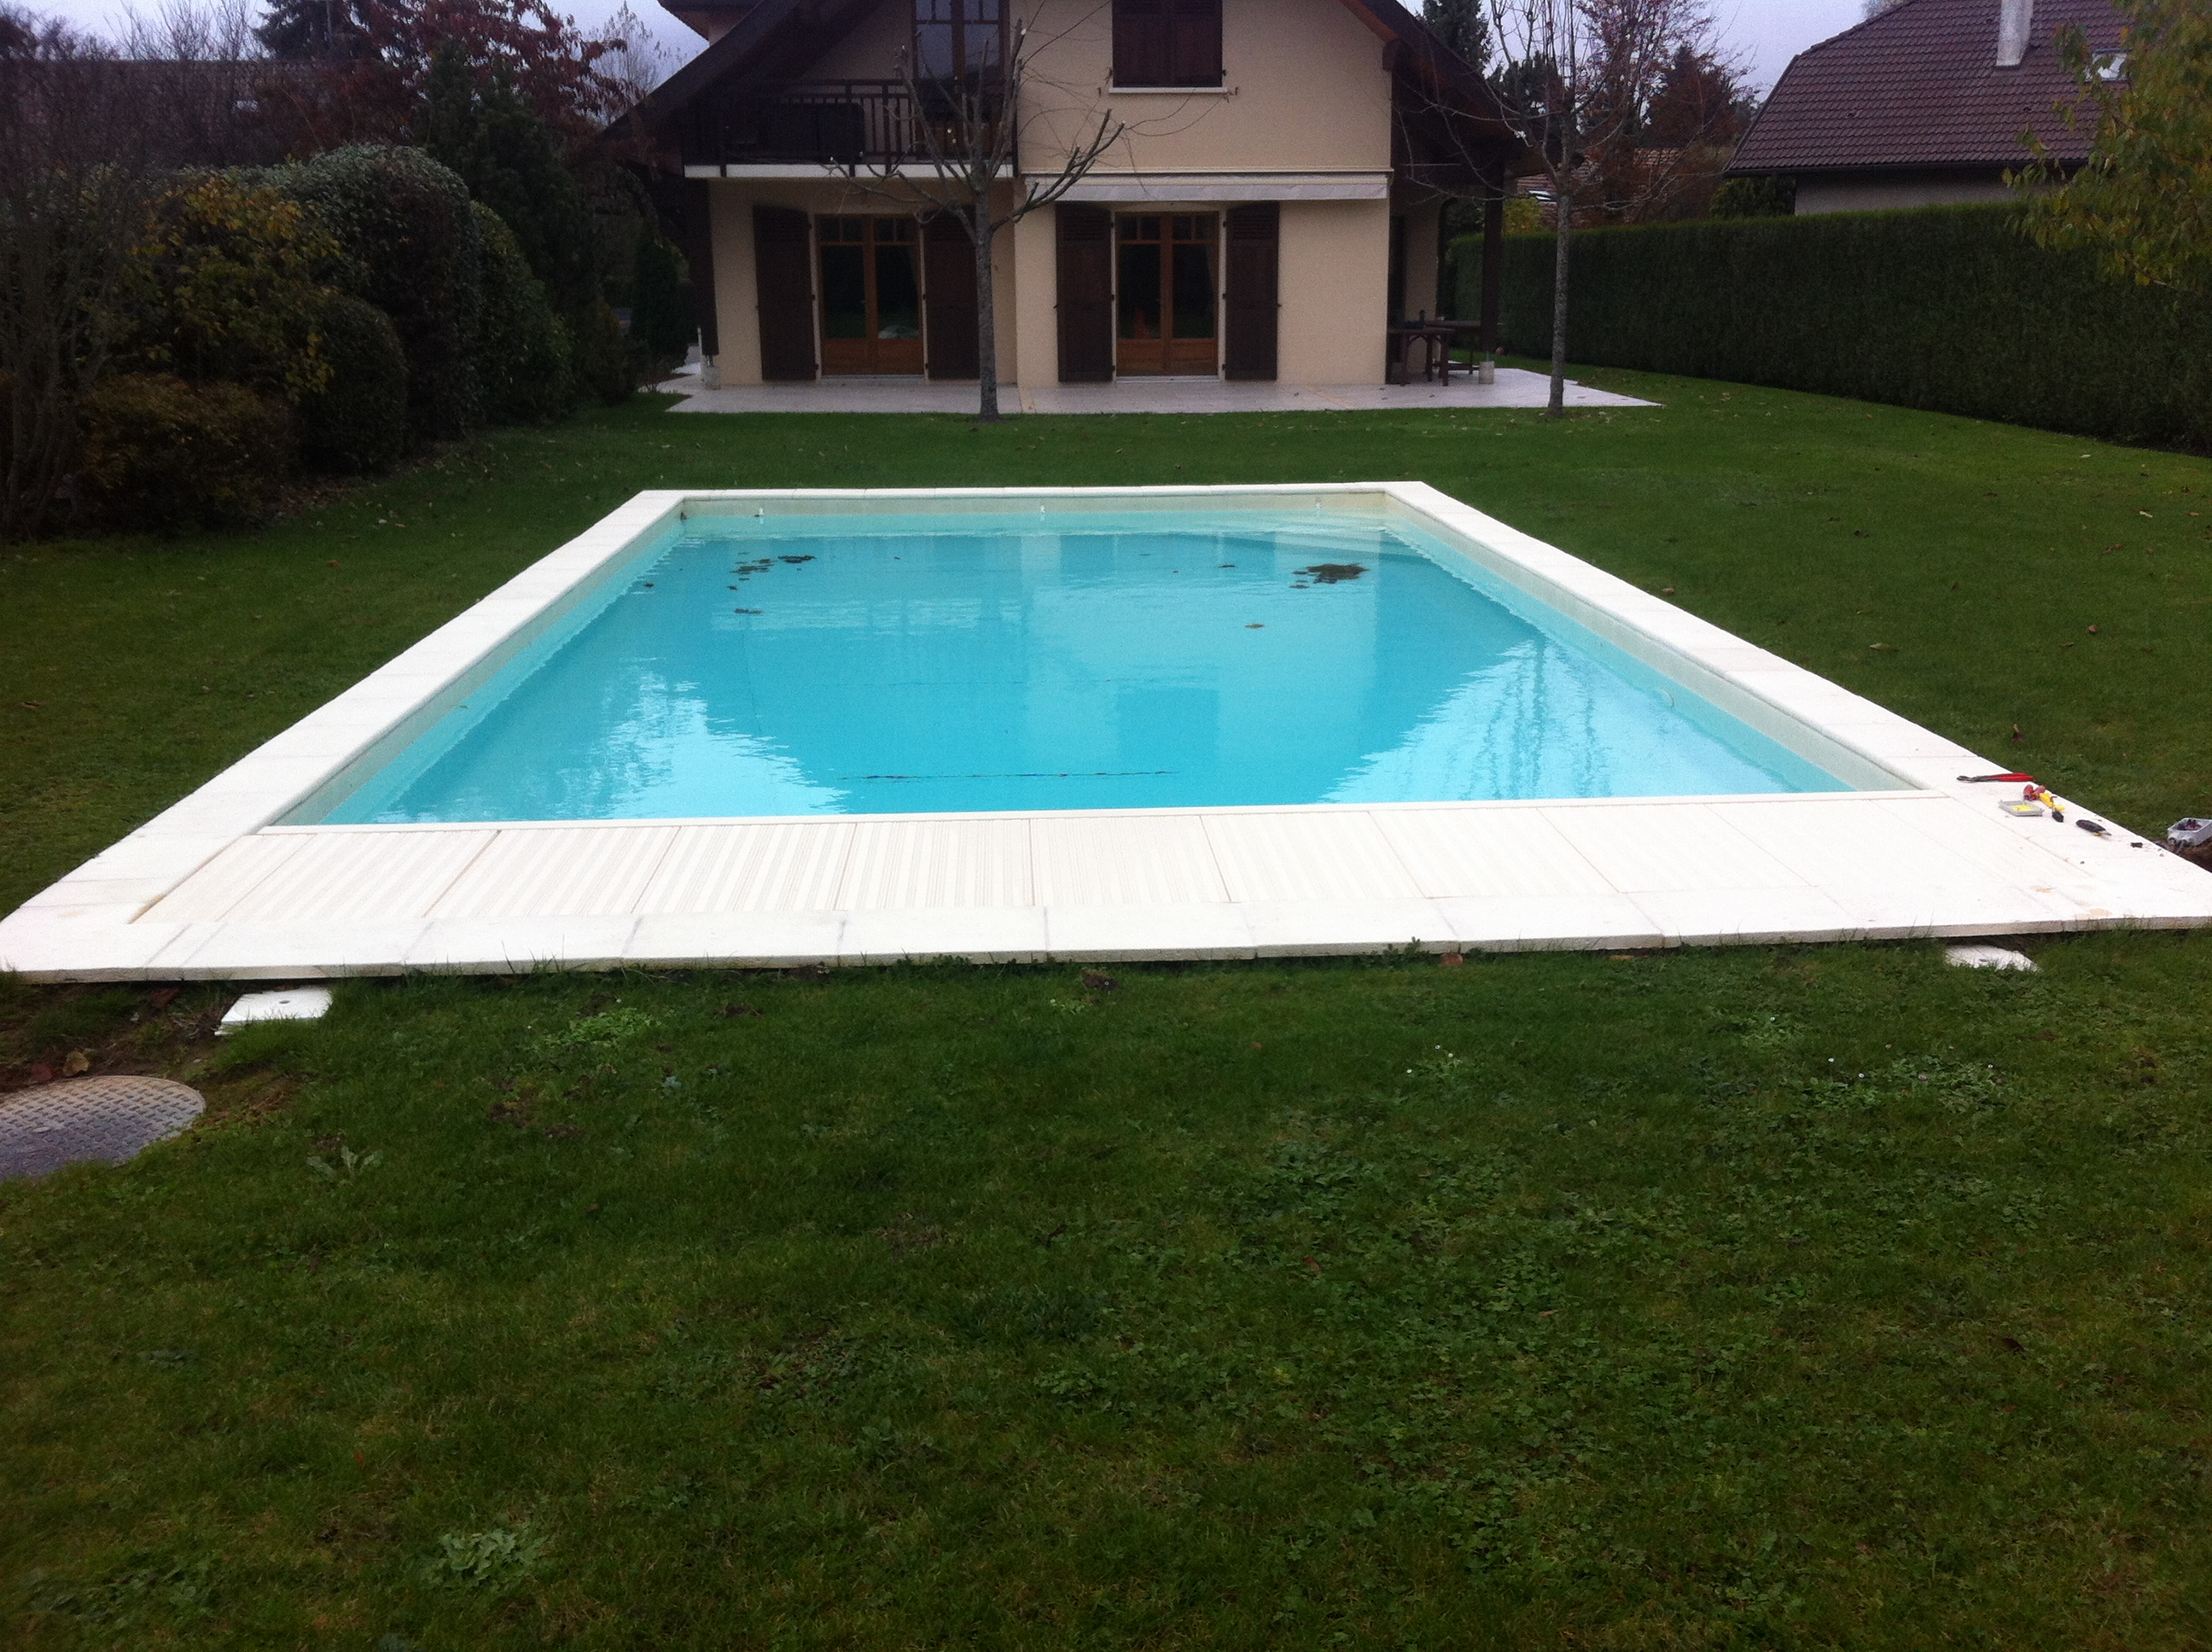 Volet roulant piscine exterieure for Construction piscine